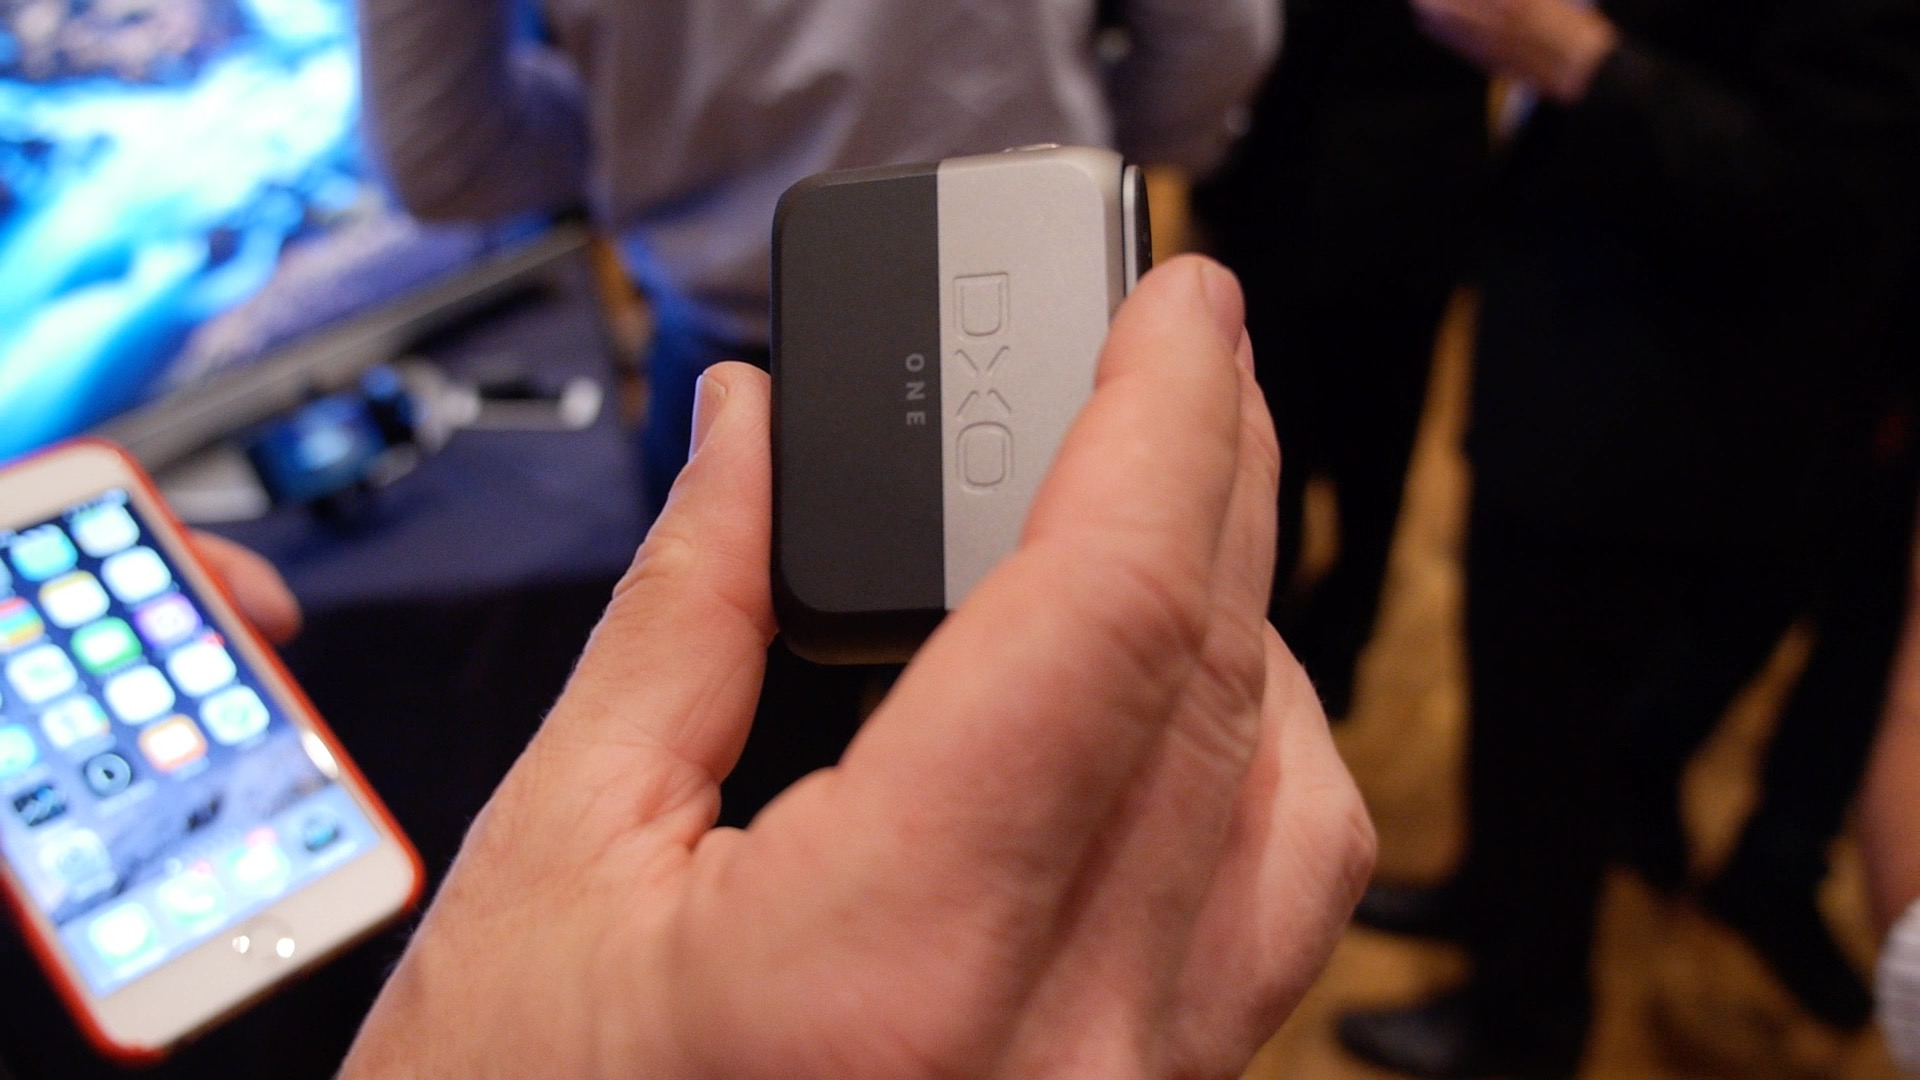 The DxO One Turns Your iPhone Into a DSLR